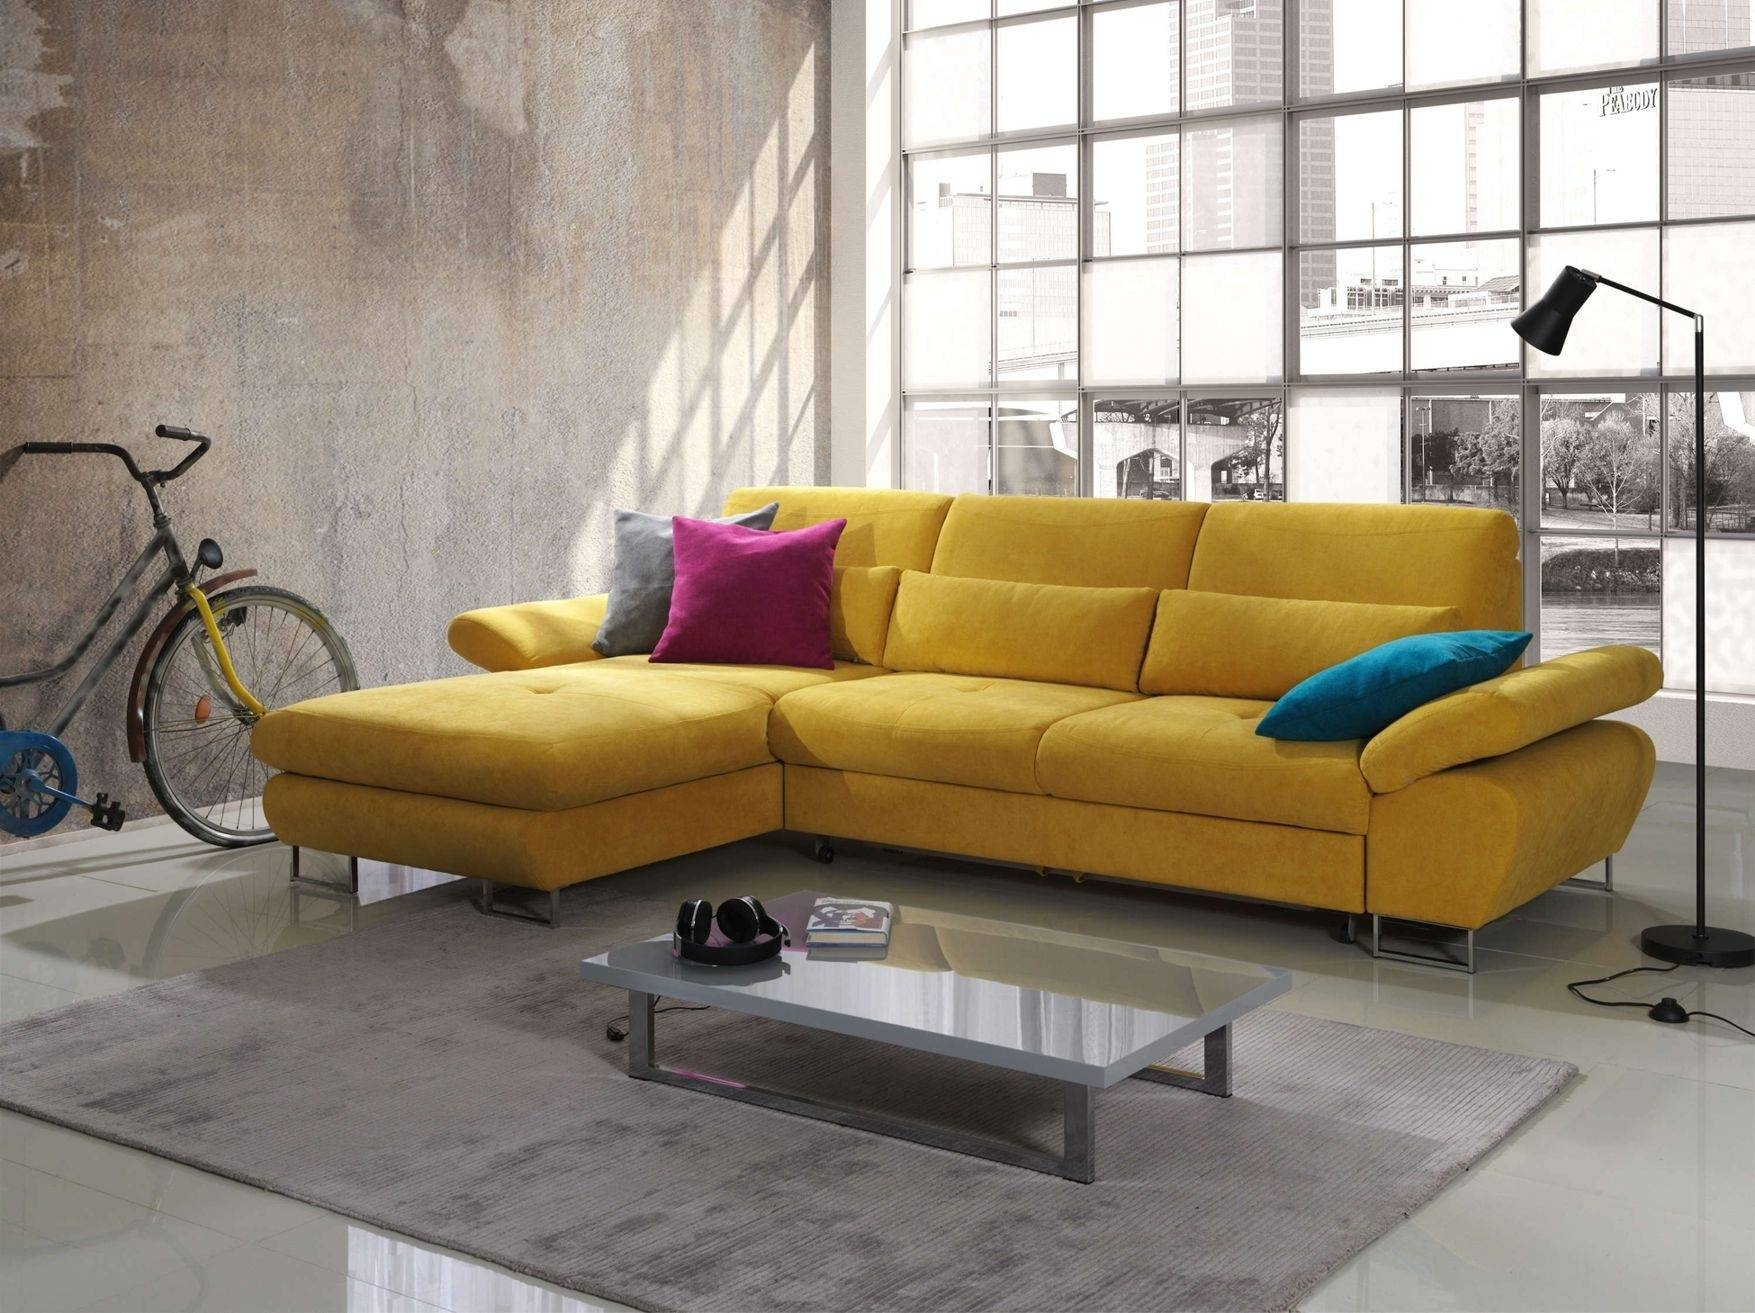 Best Apartment Sized Sectional Images - Interior Design And intended for Apartment Size Sofas and Sectionals (Image 11 of 30)